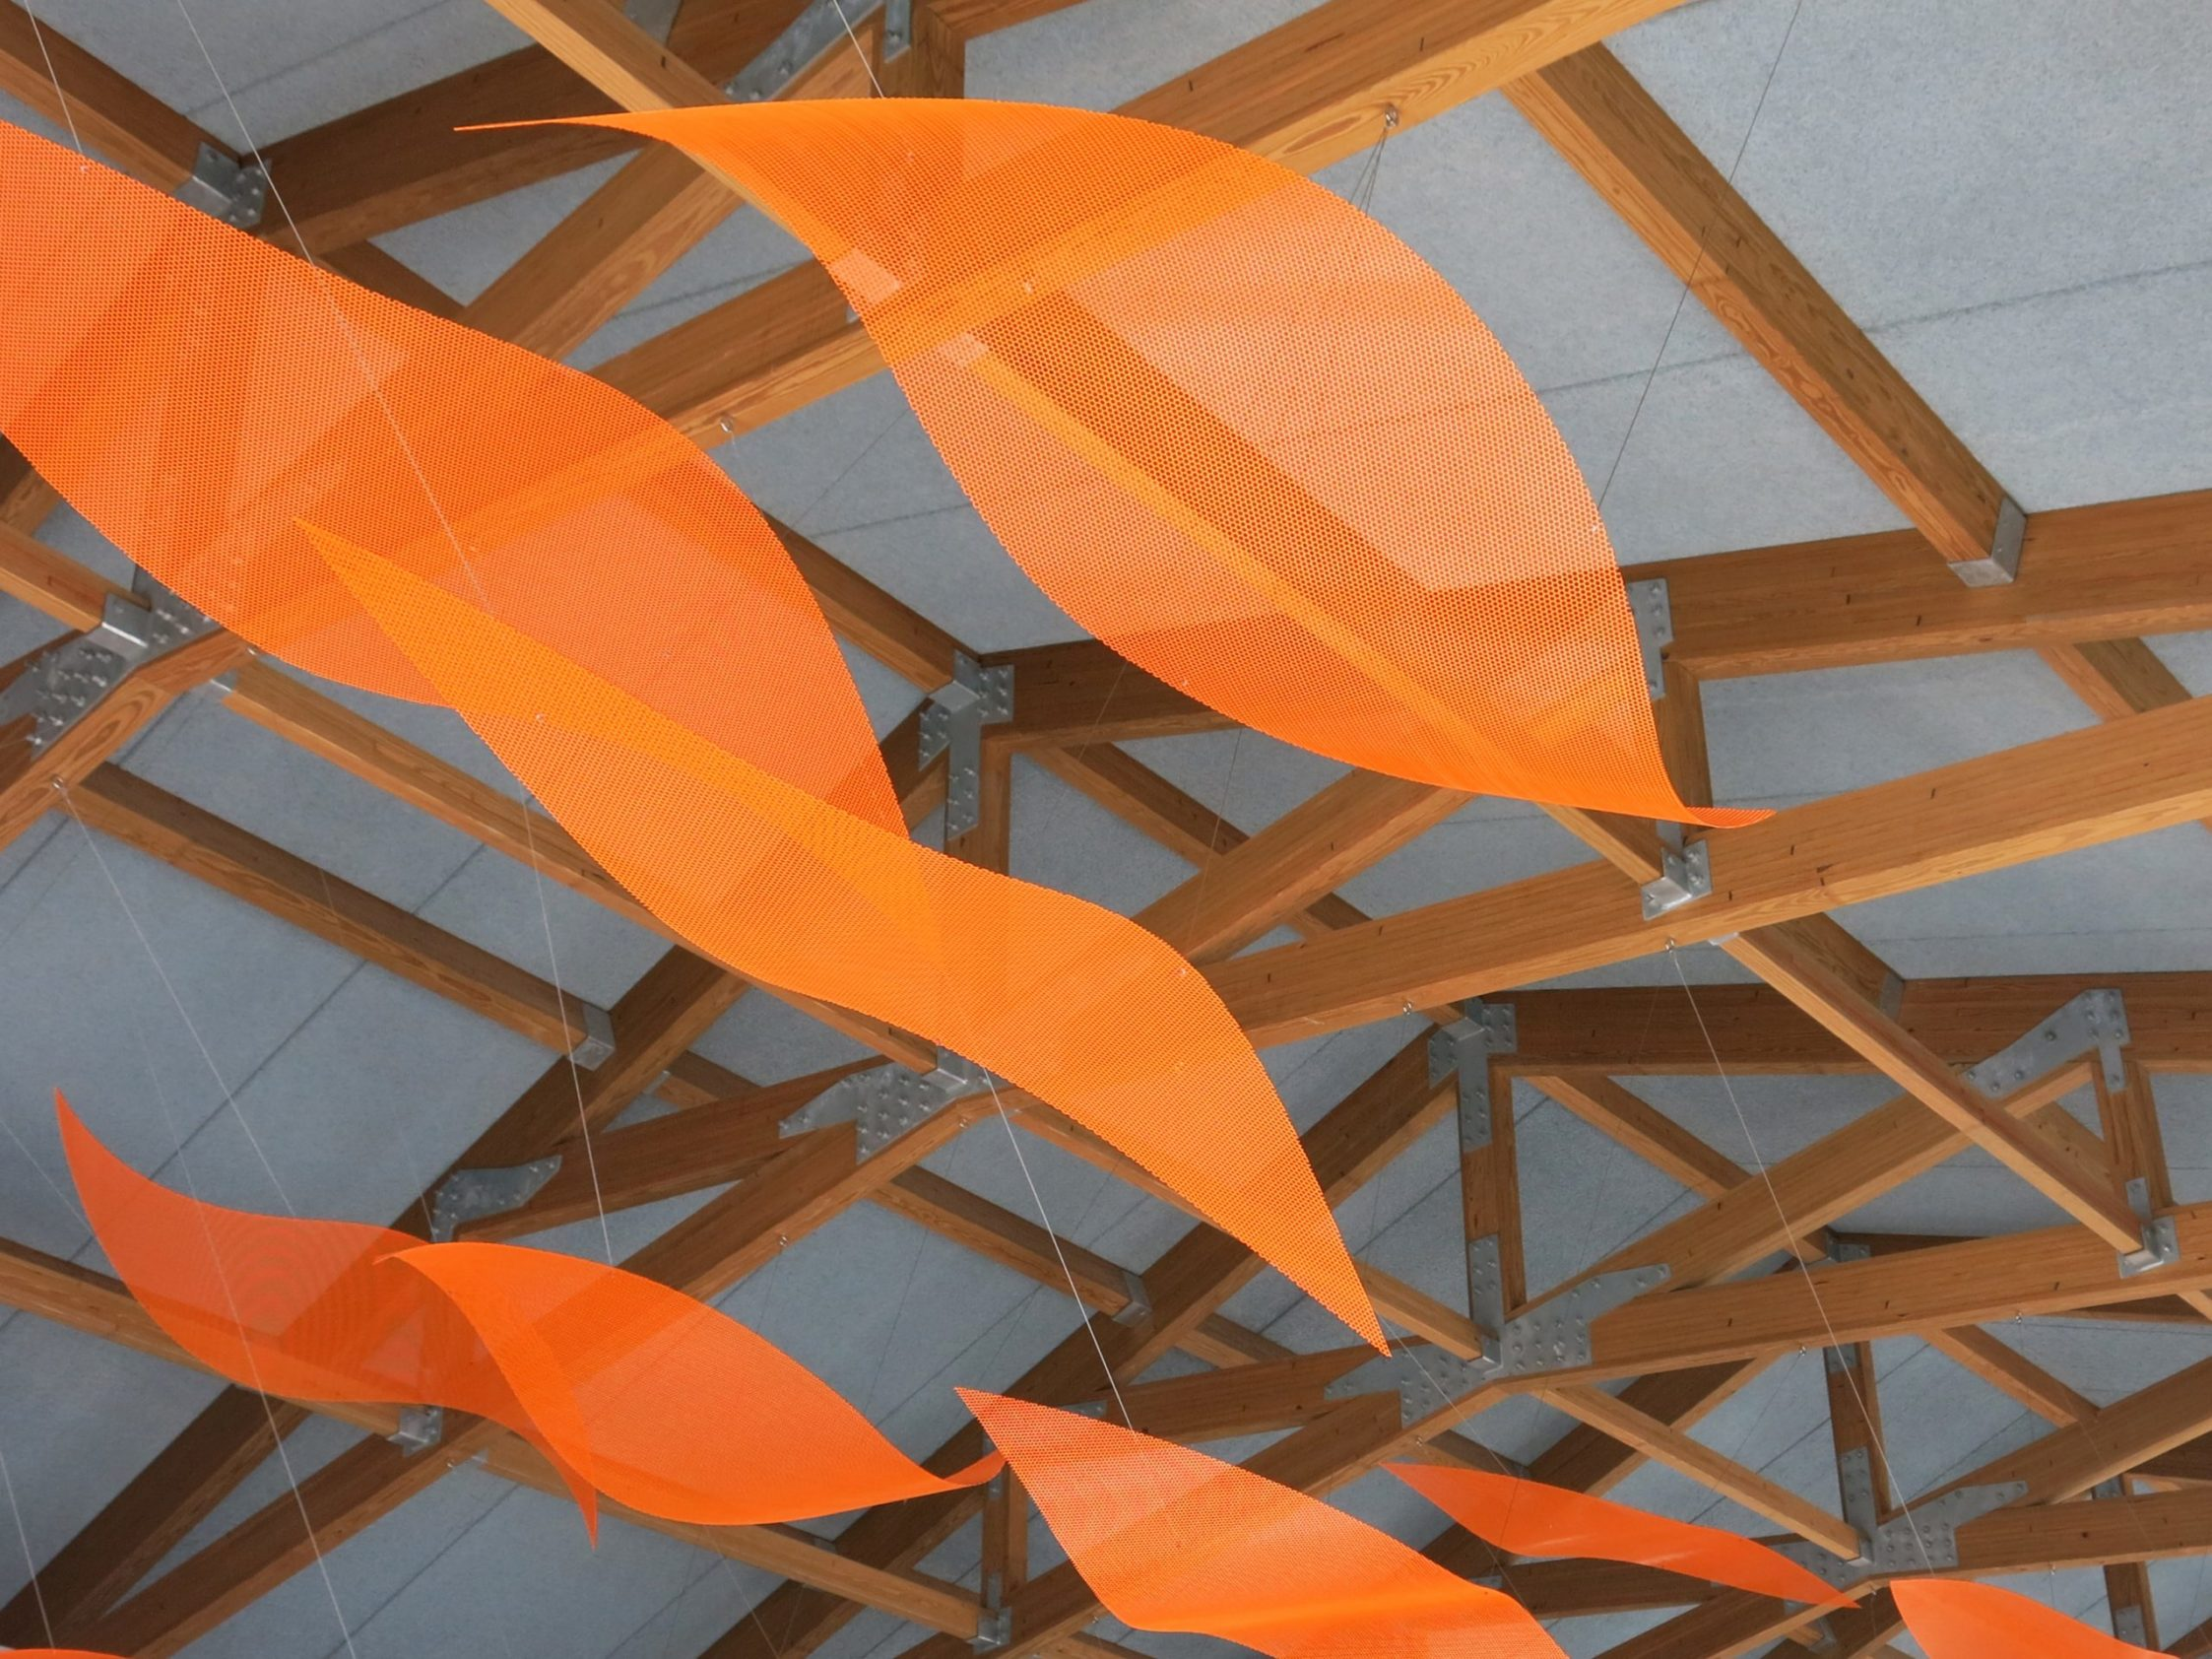 Orange petals of the suspended sculpture by Talley Fisher in Aurora Health and Wellness Center.